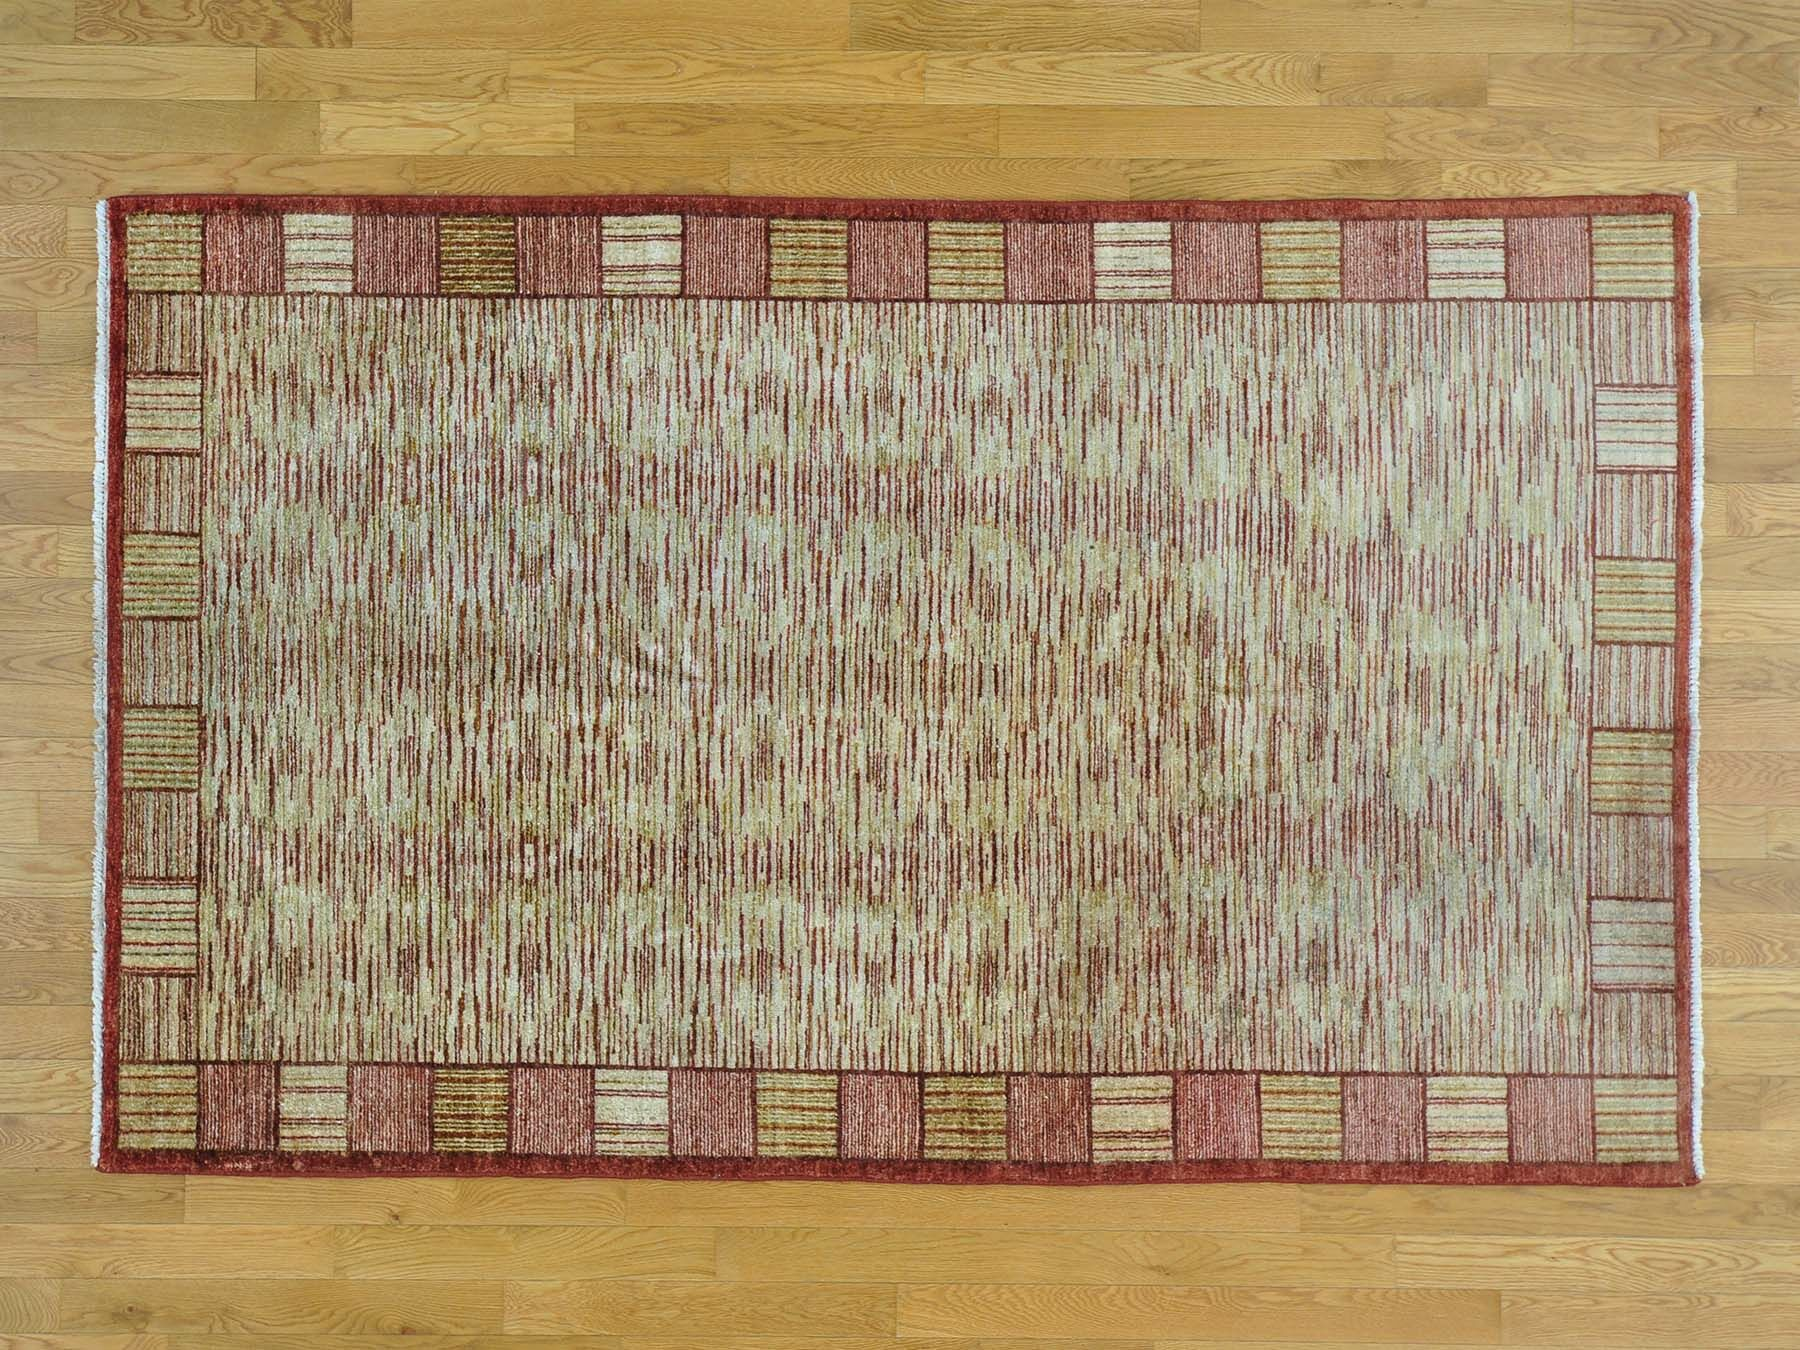 One-of-a-Kind Becker Handwoven Wool Area Rug